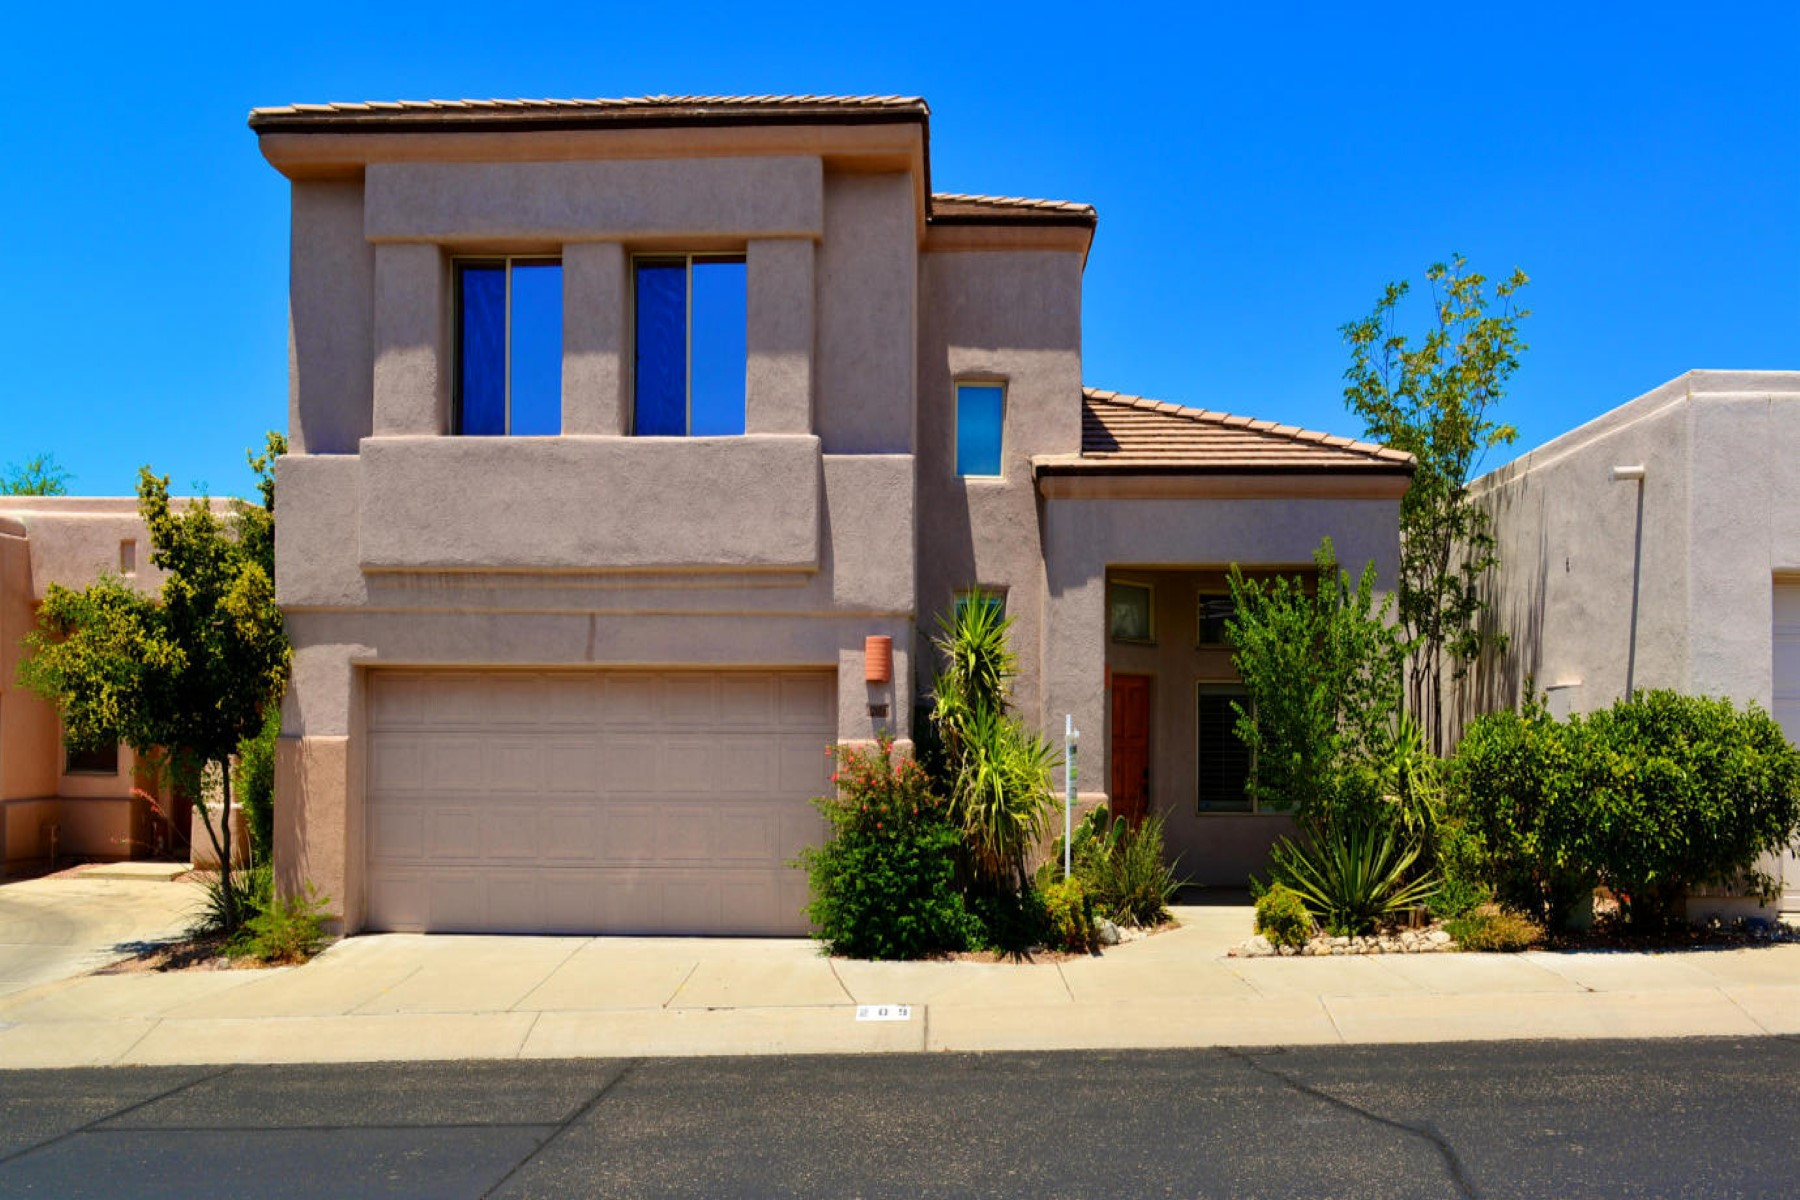 一戸建て のために 売買 アット Well maintained contemporary home with beautiful mountain views 209 E Calle Zavala Tucson, アリゾナ, 85704 アメリカ合衆国